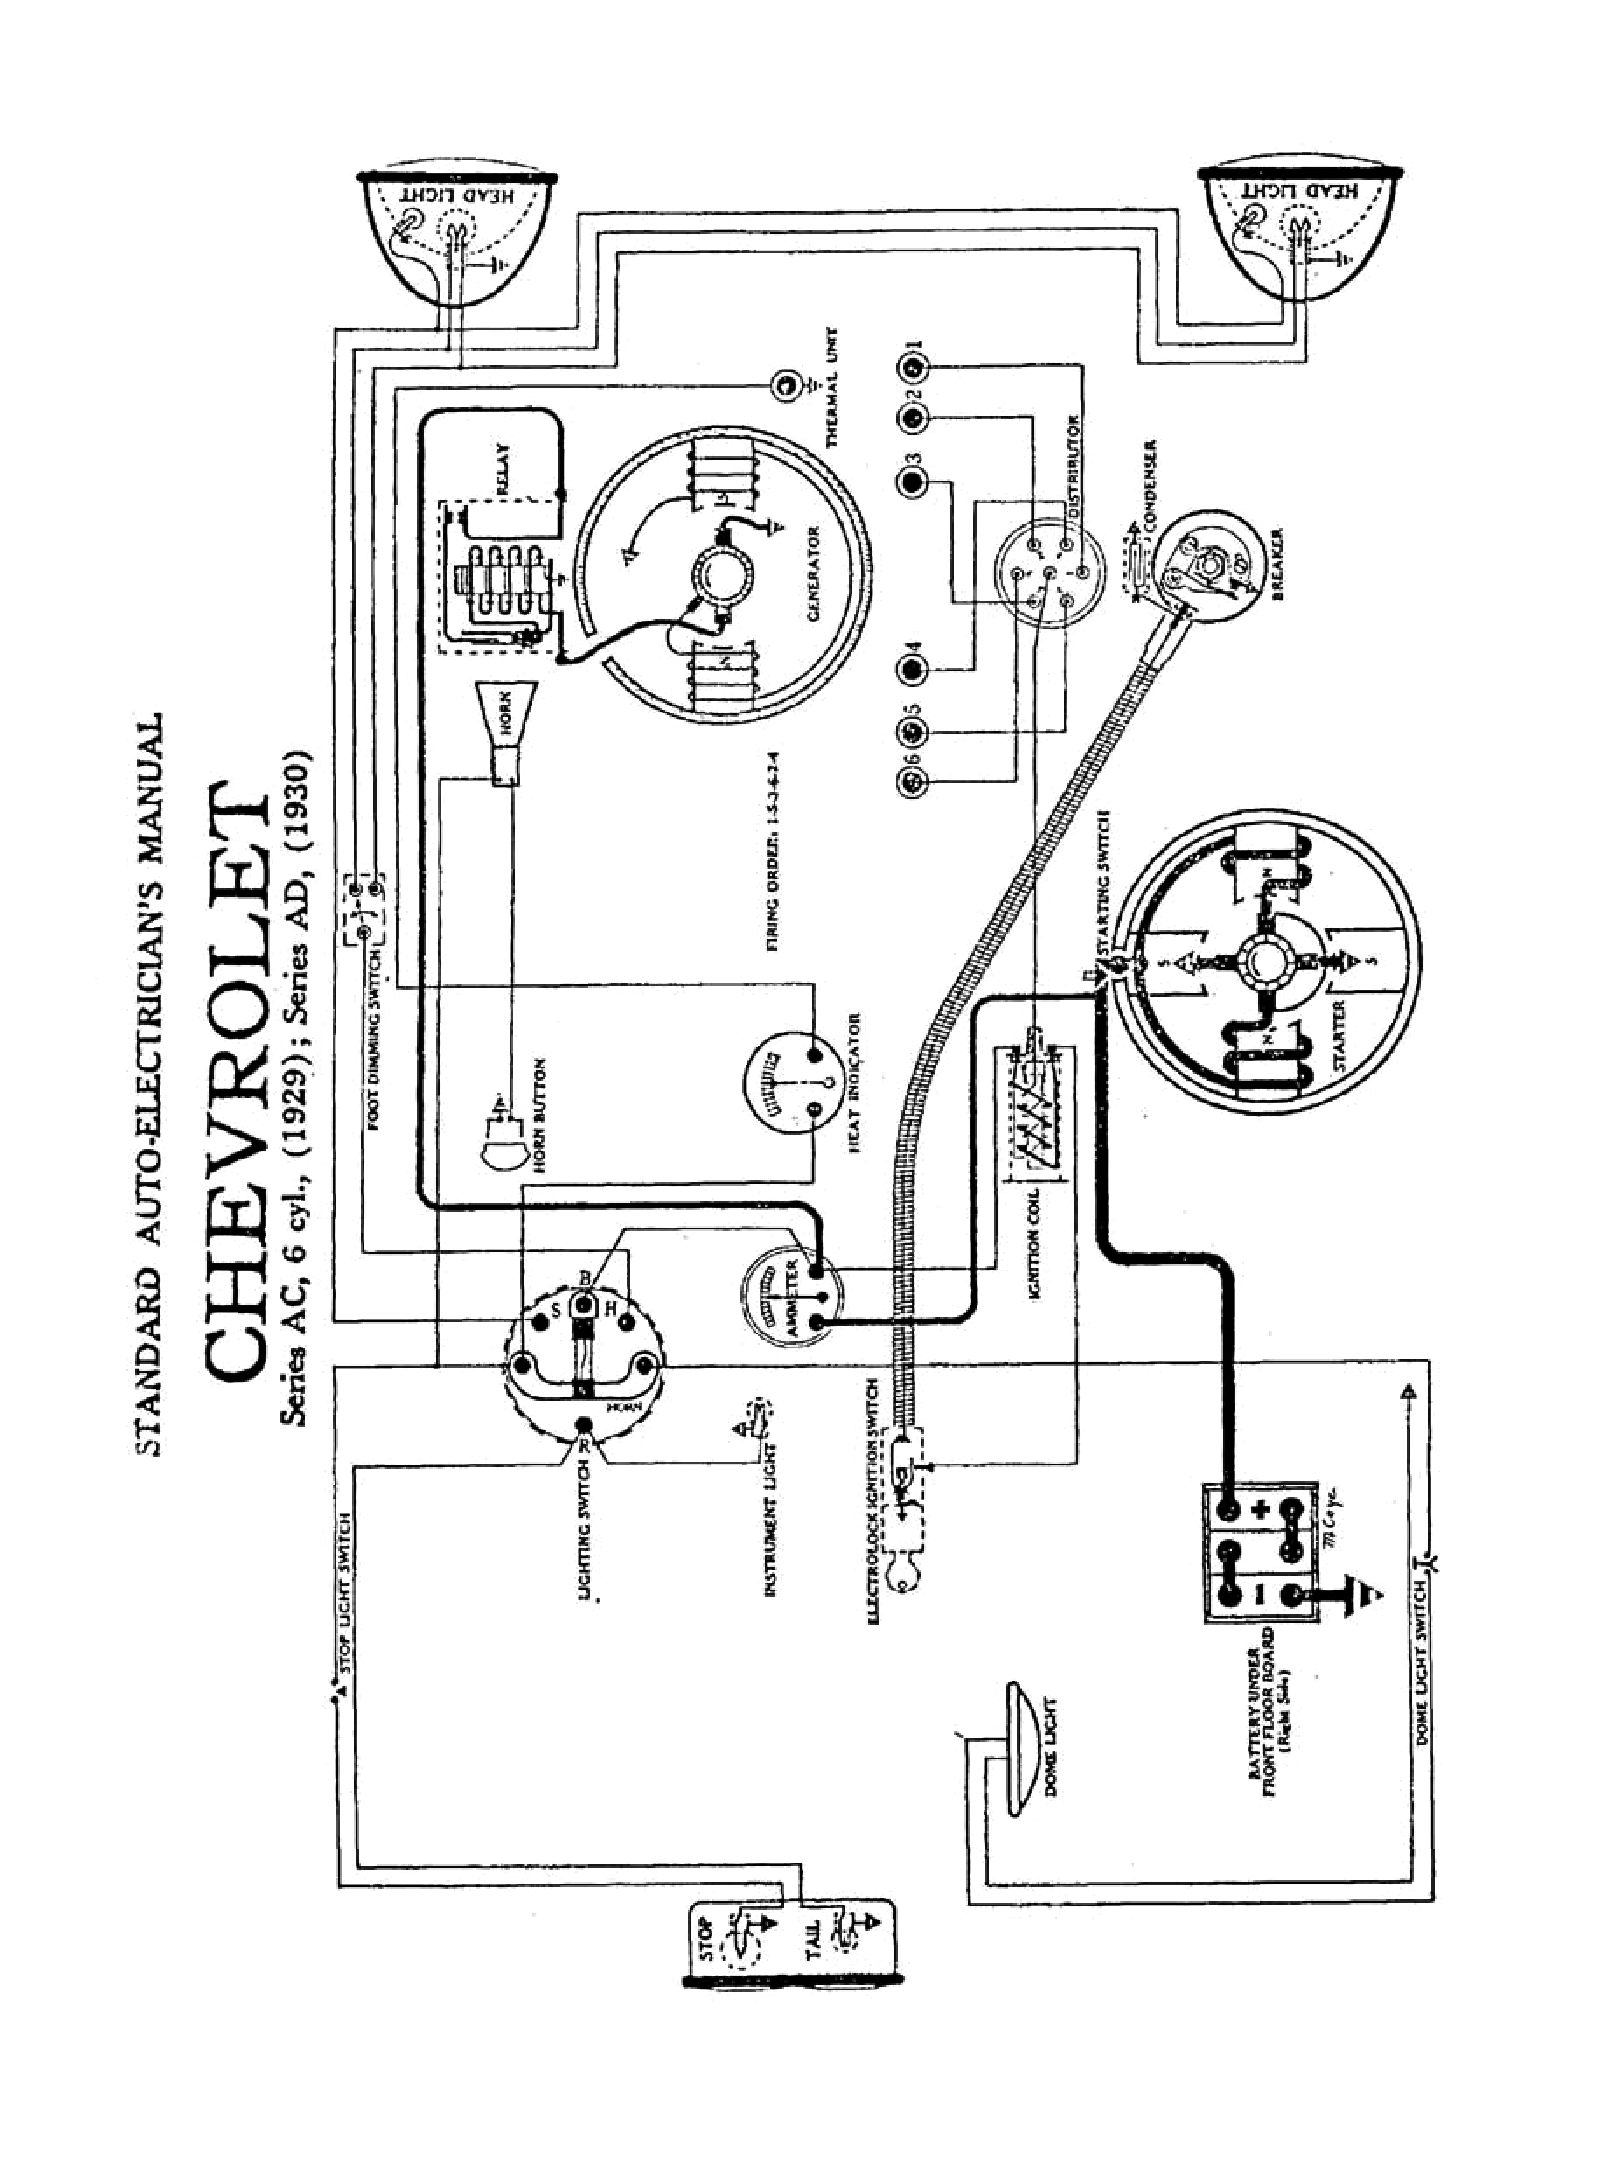 8n Ford Tractor Starter Additionally 8n Ford Tractor Wiring Diagram